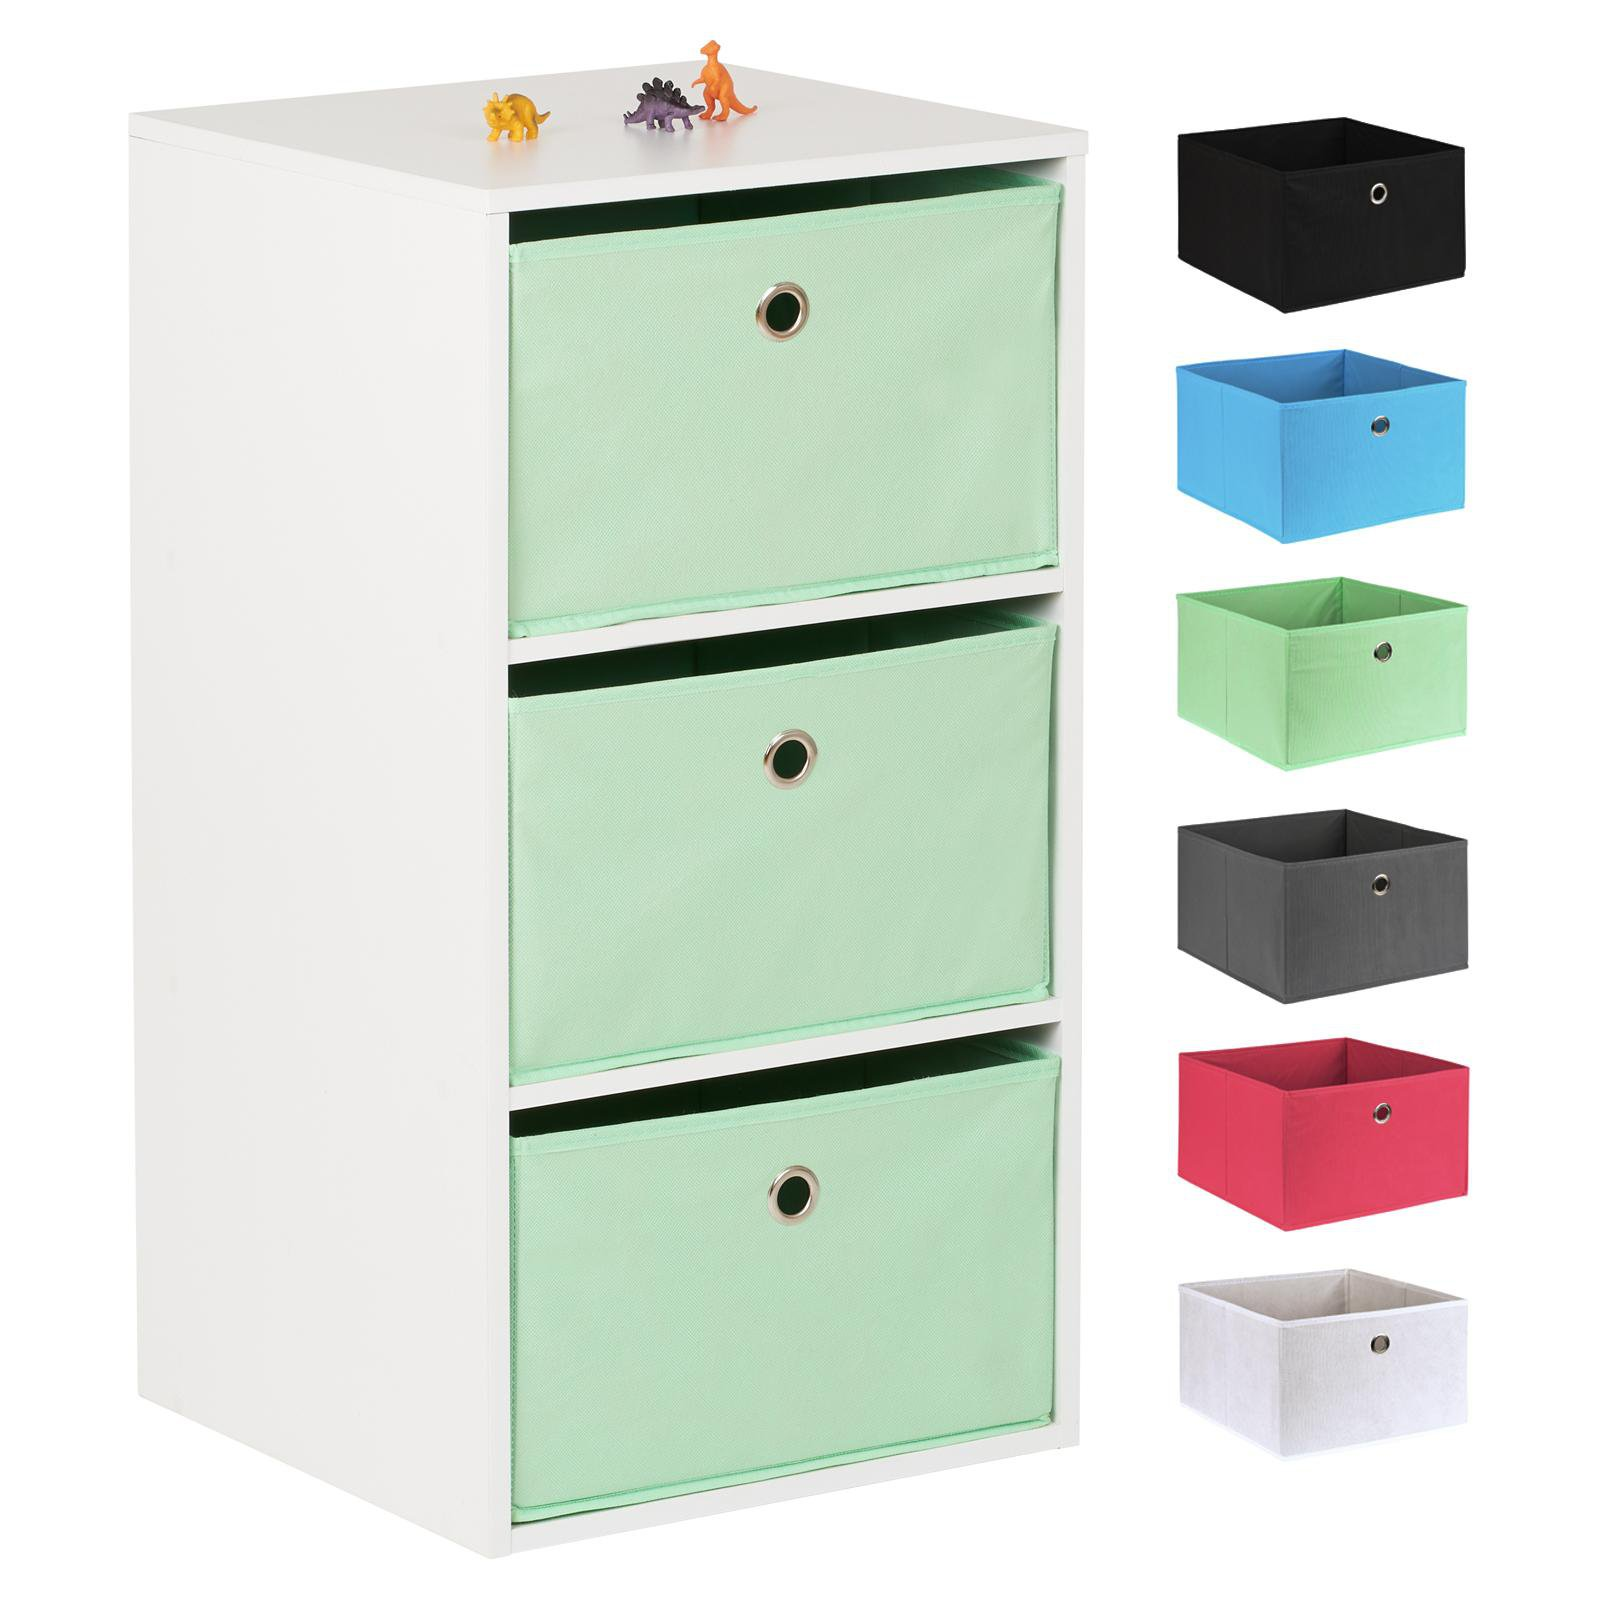 image-Hartleys White 3 Cube Kids Storage Unit & 3 Easy Grasp Box Drawers - Mint